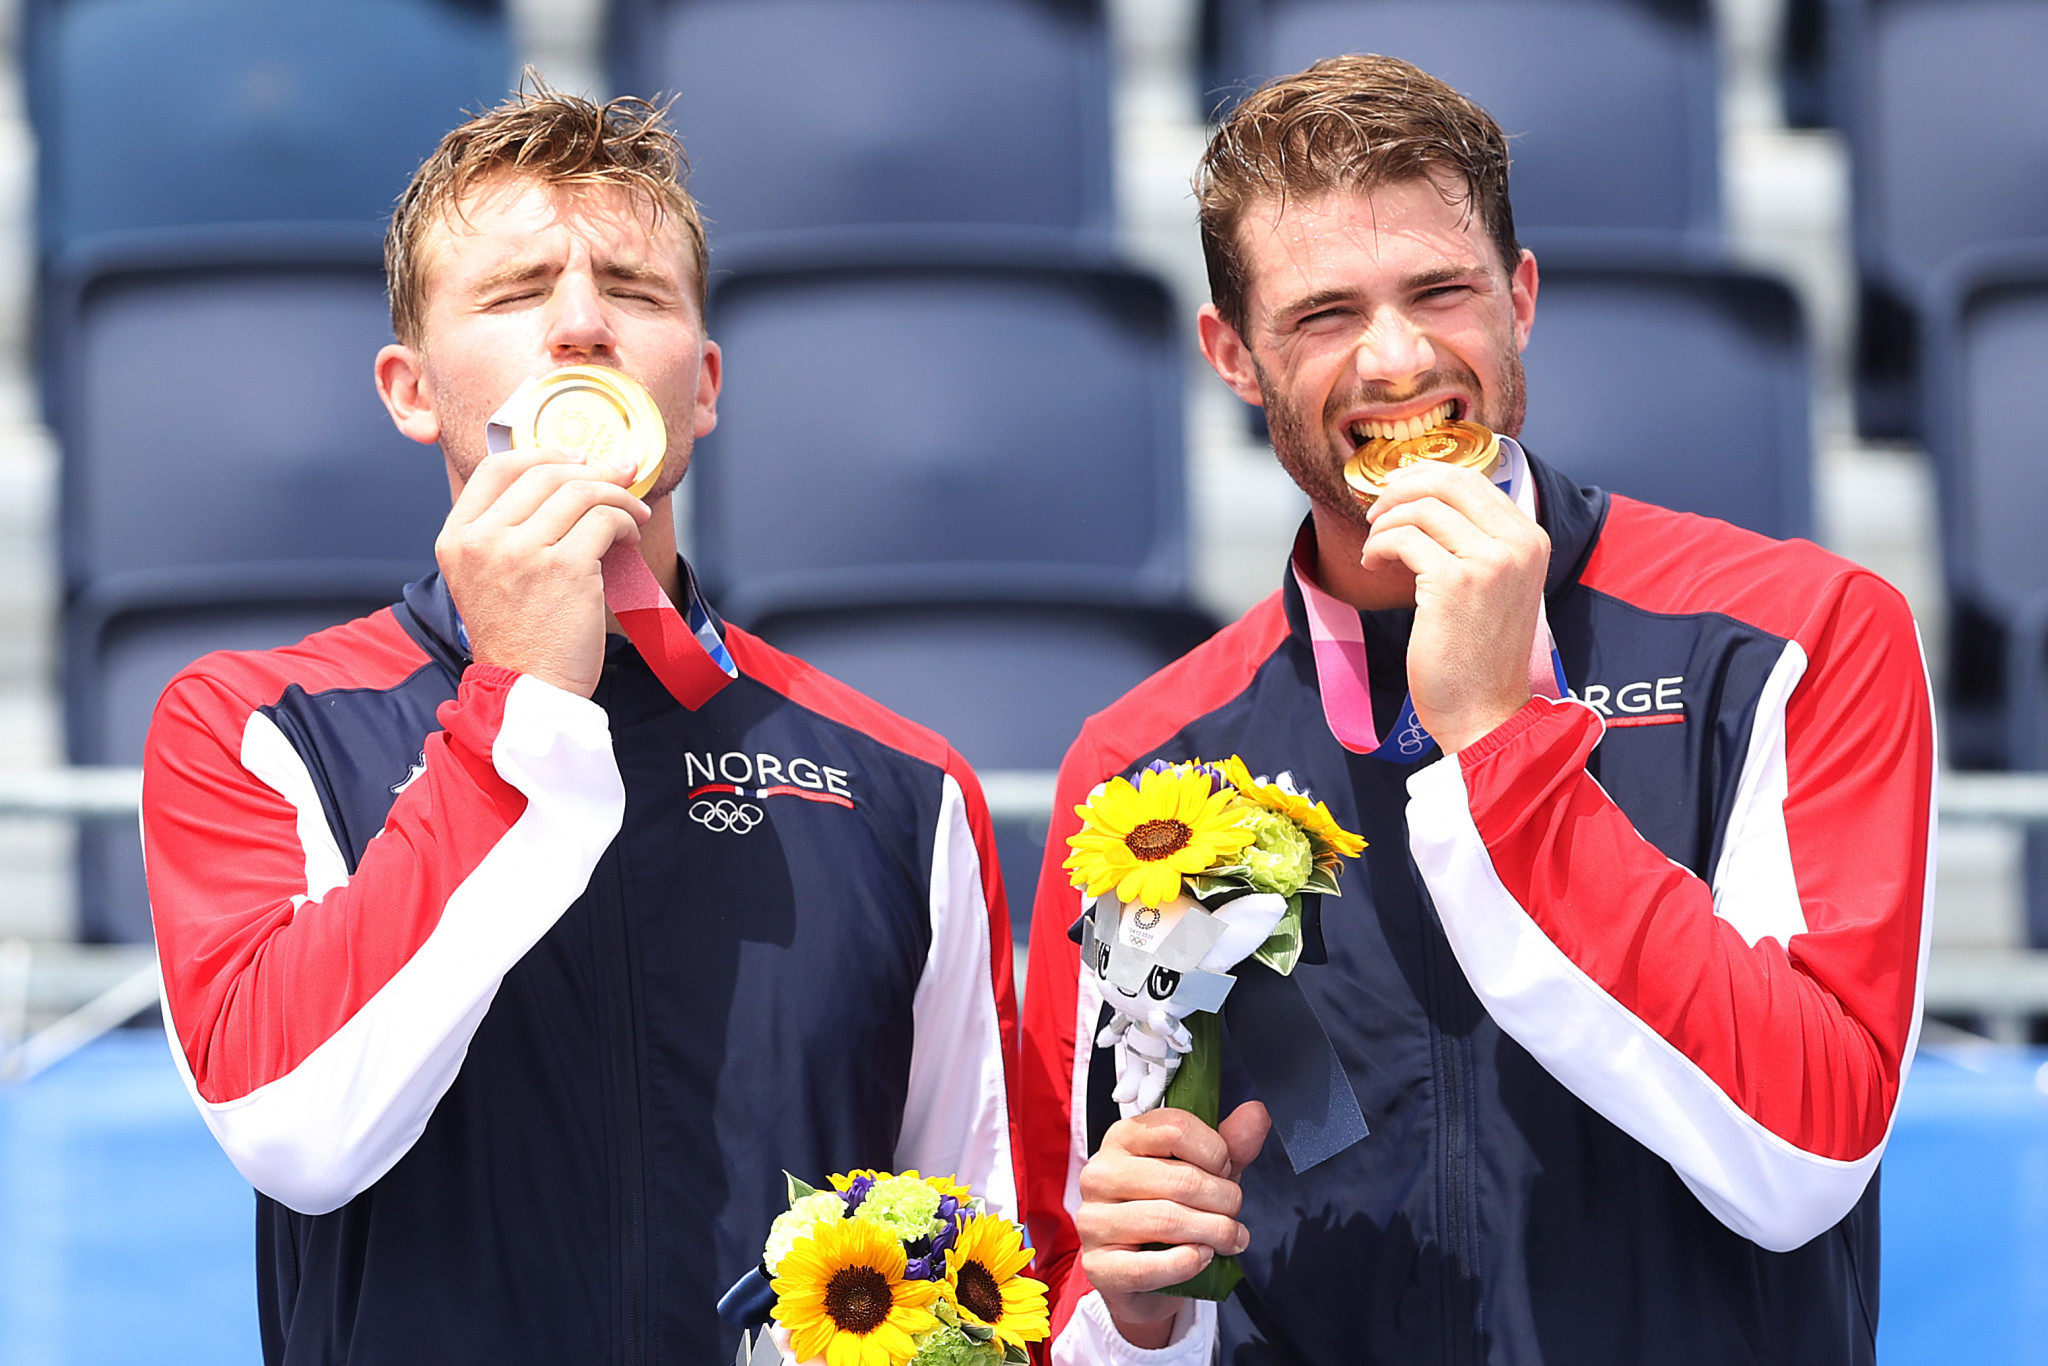 Sørum and Mol look to build on Olympic gold with fourth EuroBeachVolley crown